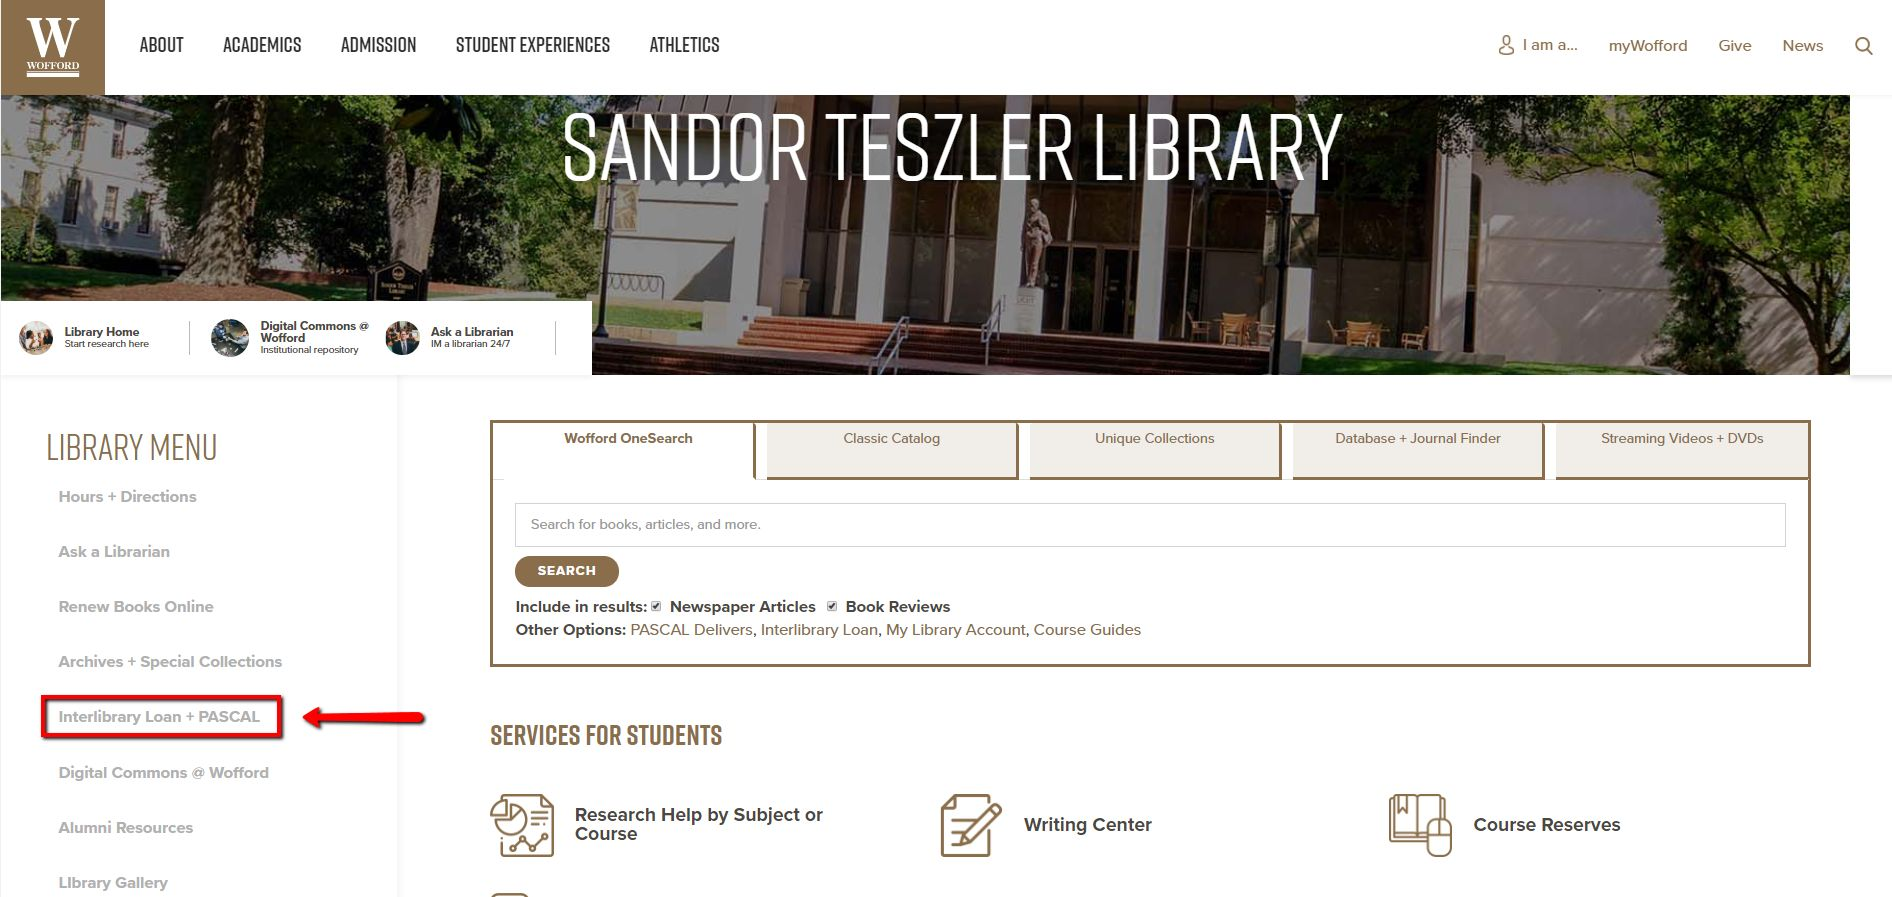 "The Wofford library homepage. In the left column, the link for ""Interlibrary Loan + PASCAL"" is highlighted."